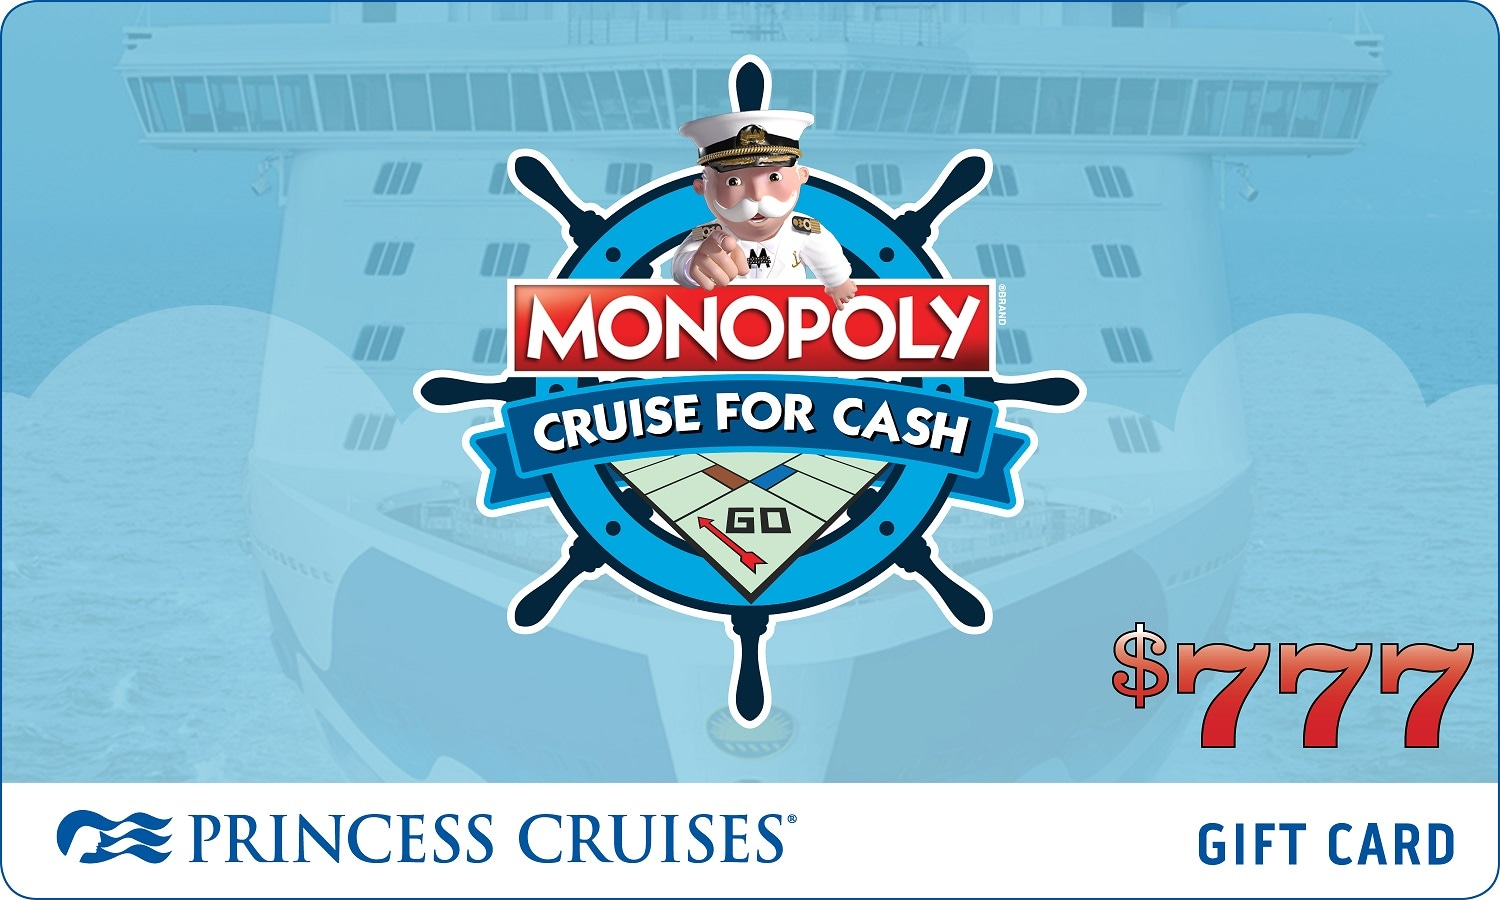 Princess Cruises Introduces Monopoly Cruise For Cash Promotion A